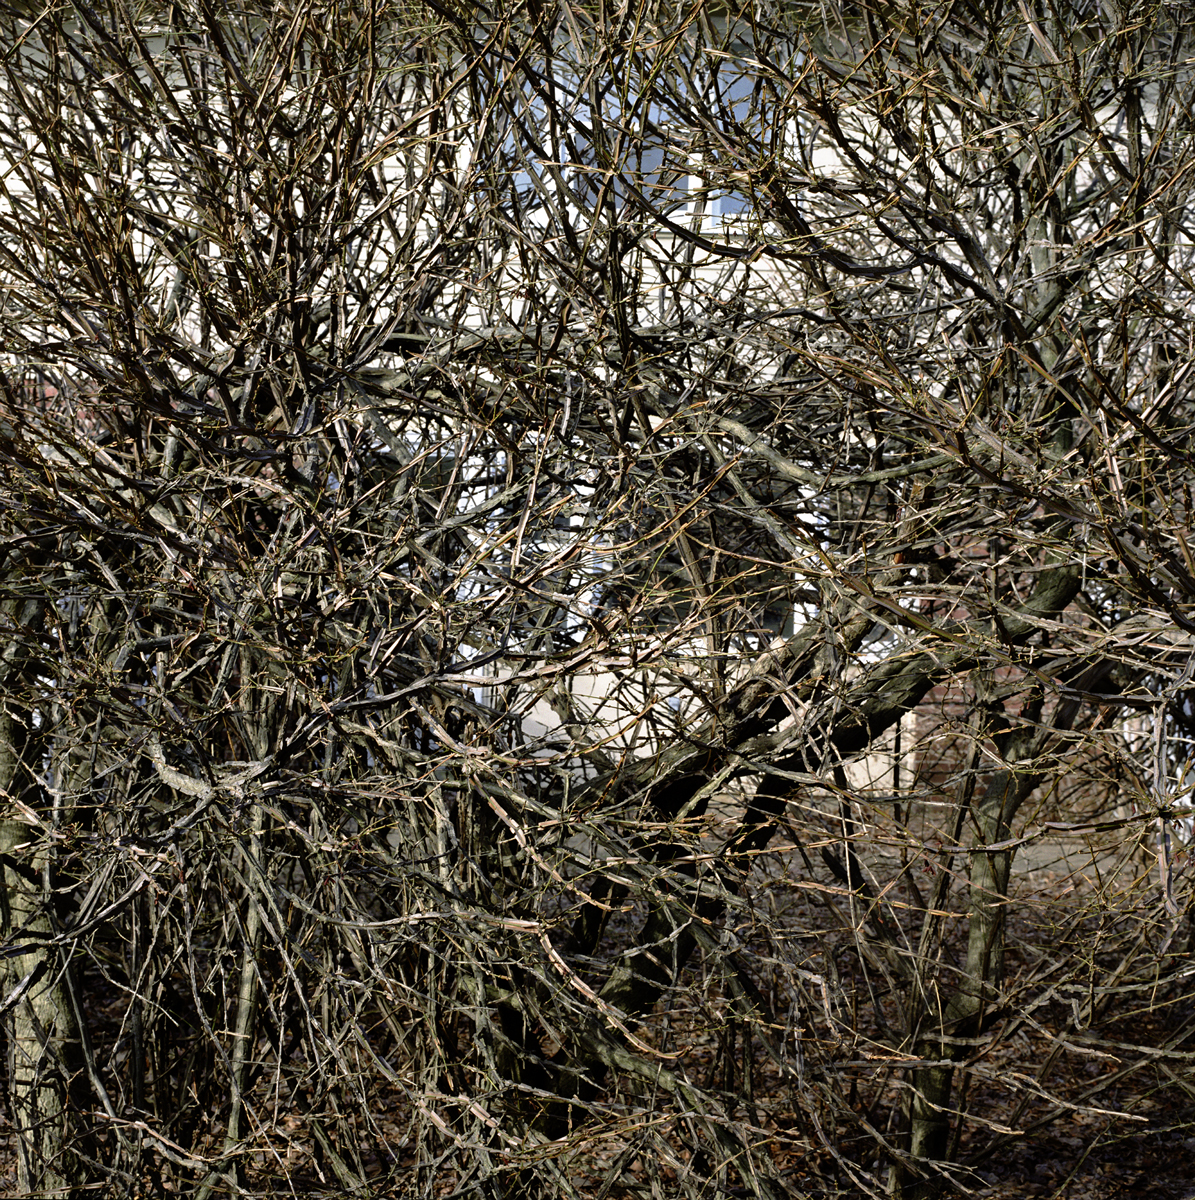 32. Untitled (Hedge). 2005. Archival Pigment Print.